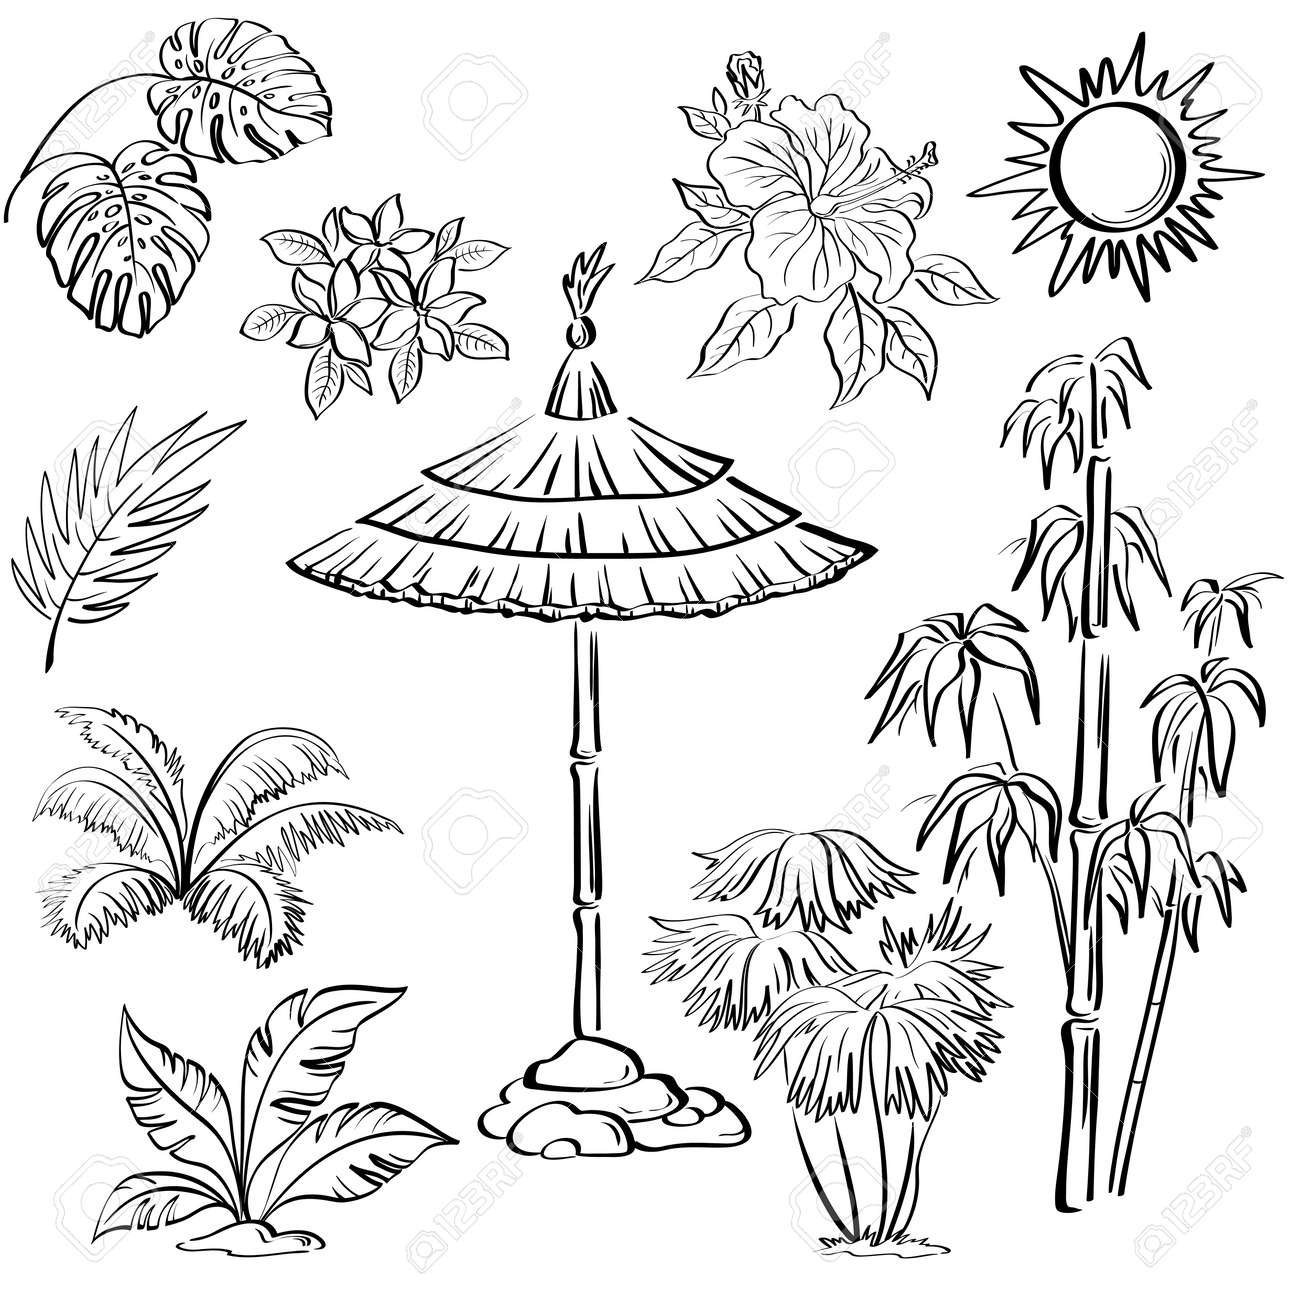 Exotic objects set, black contour on white background  umbrella canopy, plants, leaves, flowers, the sun Stock Vector - 17120373